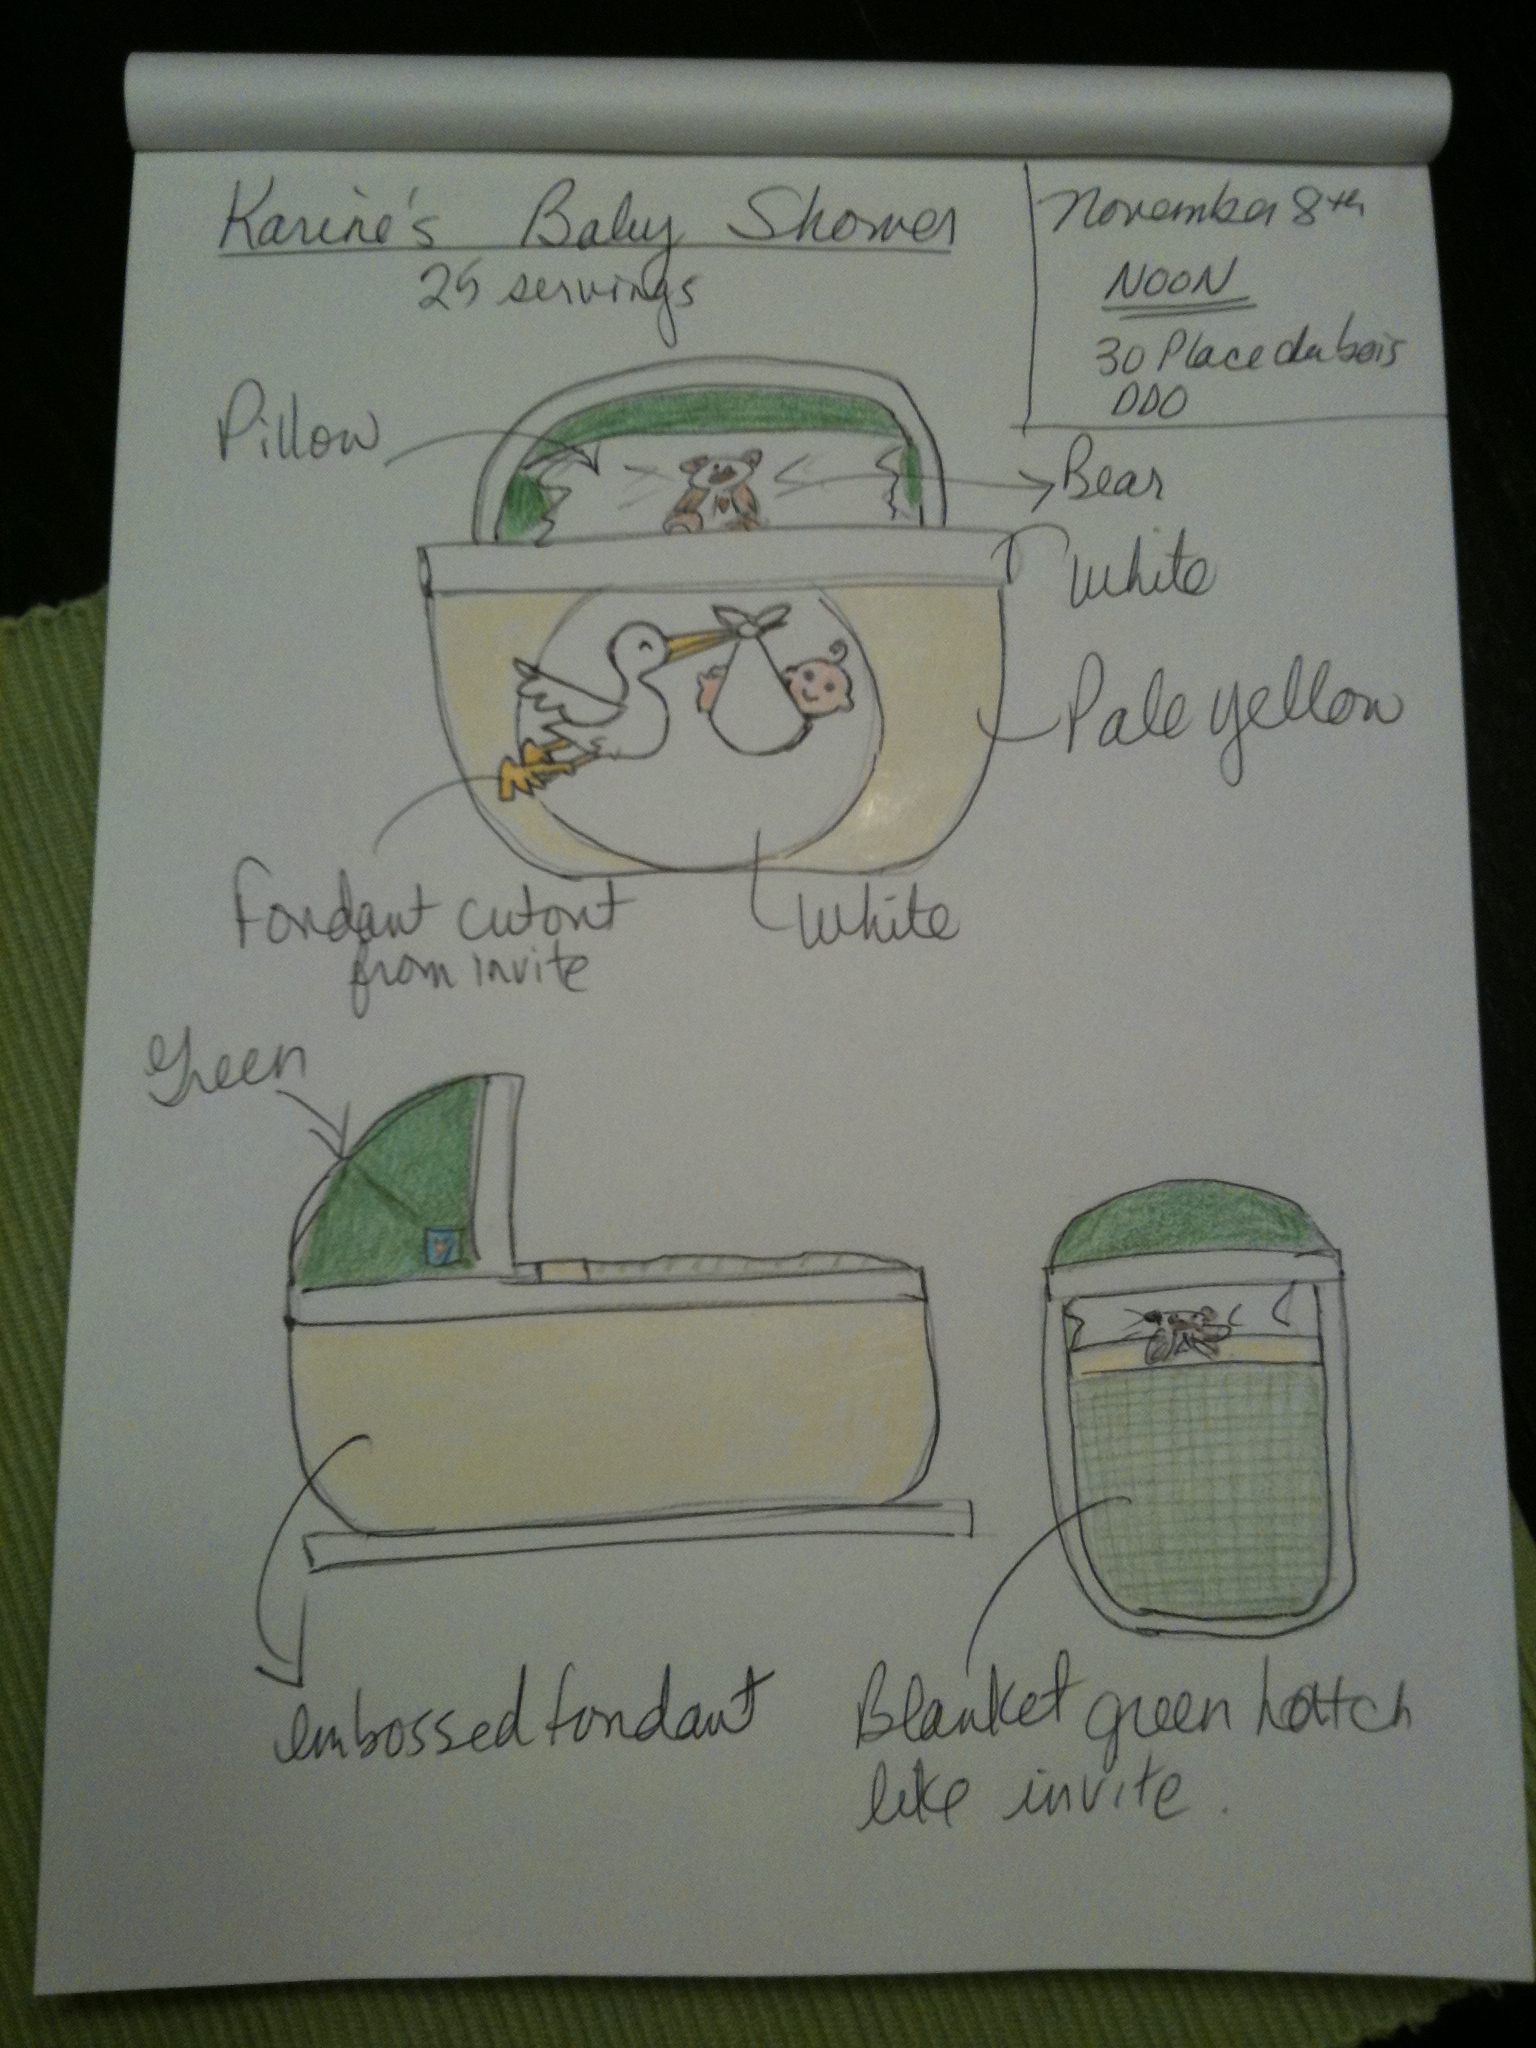 The sketch with the green hatch